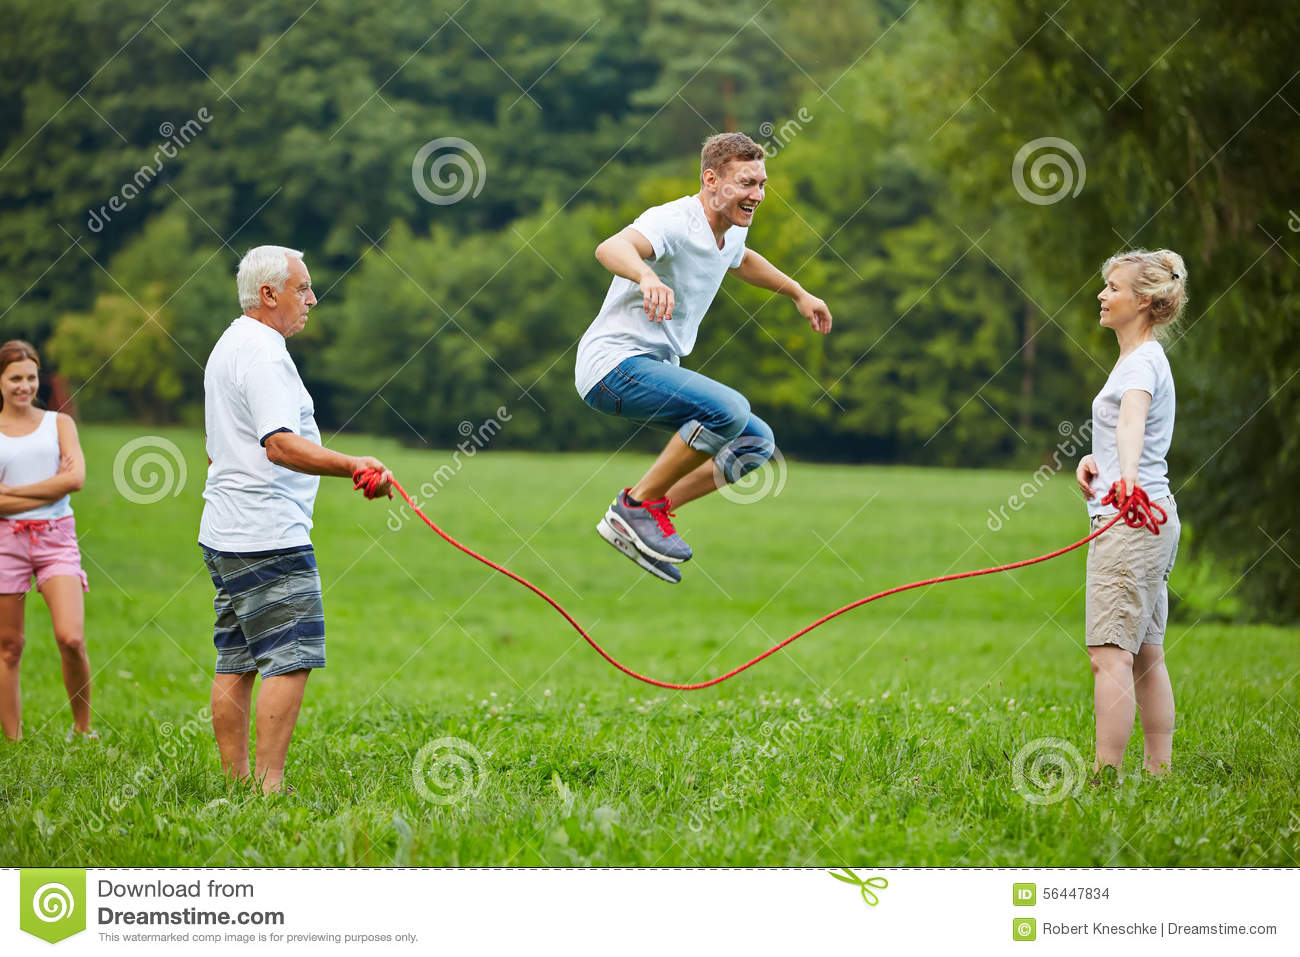 Man Rope Skipping With Jumping Rope Stock Photo - Image ...